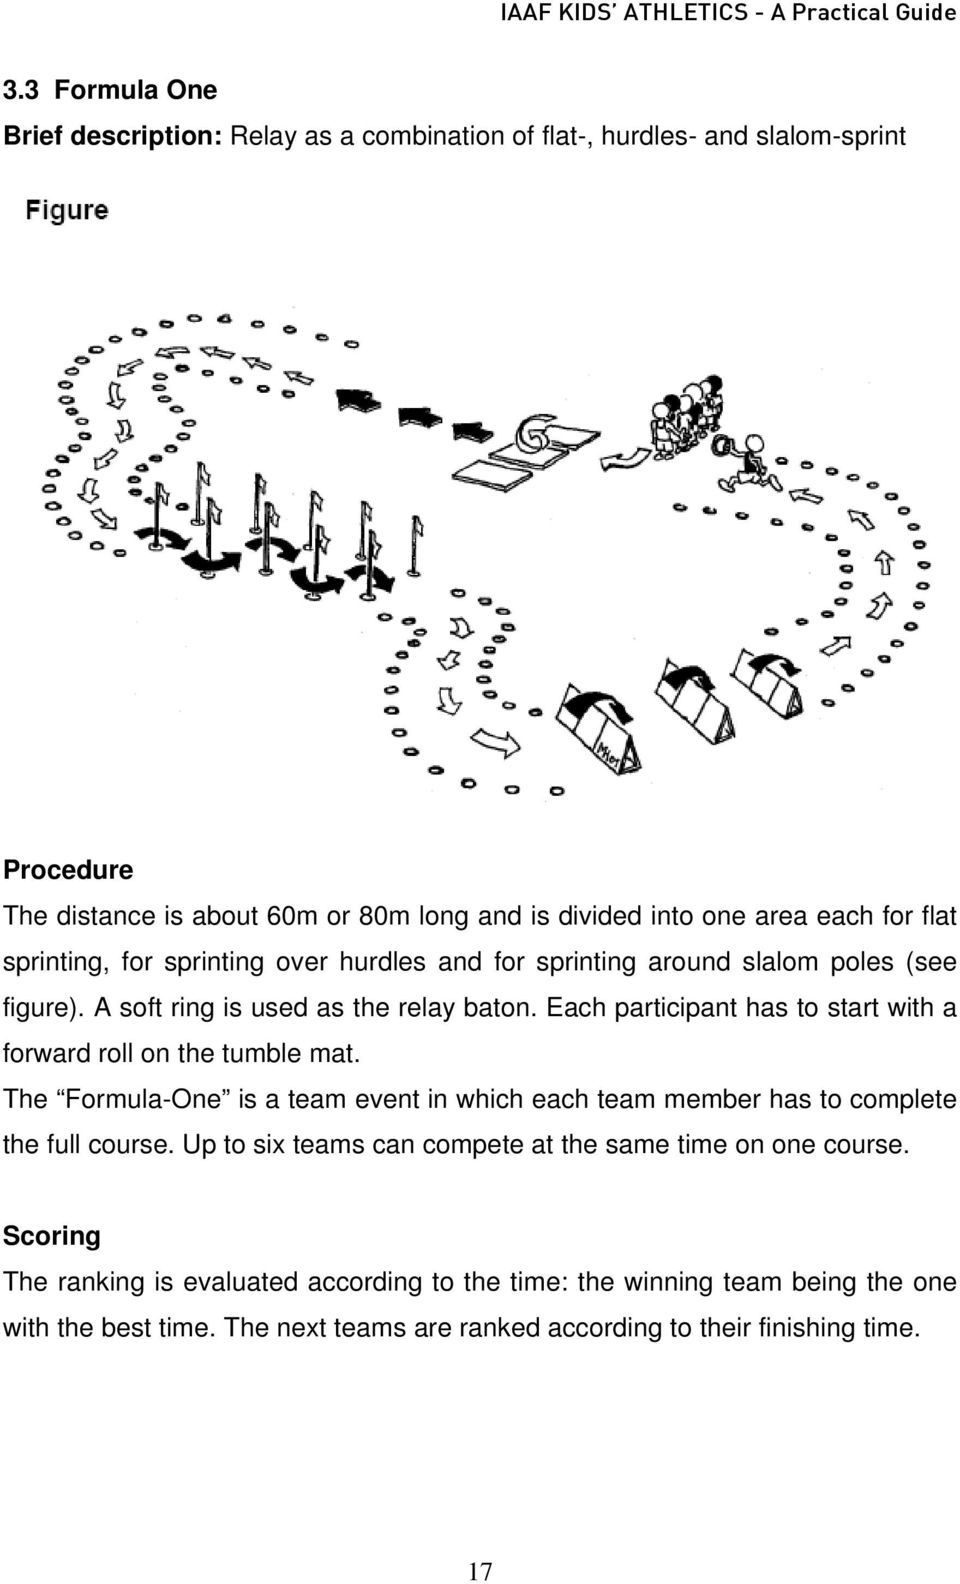 Each participant has to start with a forward roll on the tumble mat. The Formula-One is a team event in which each team member has to complete the full course.